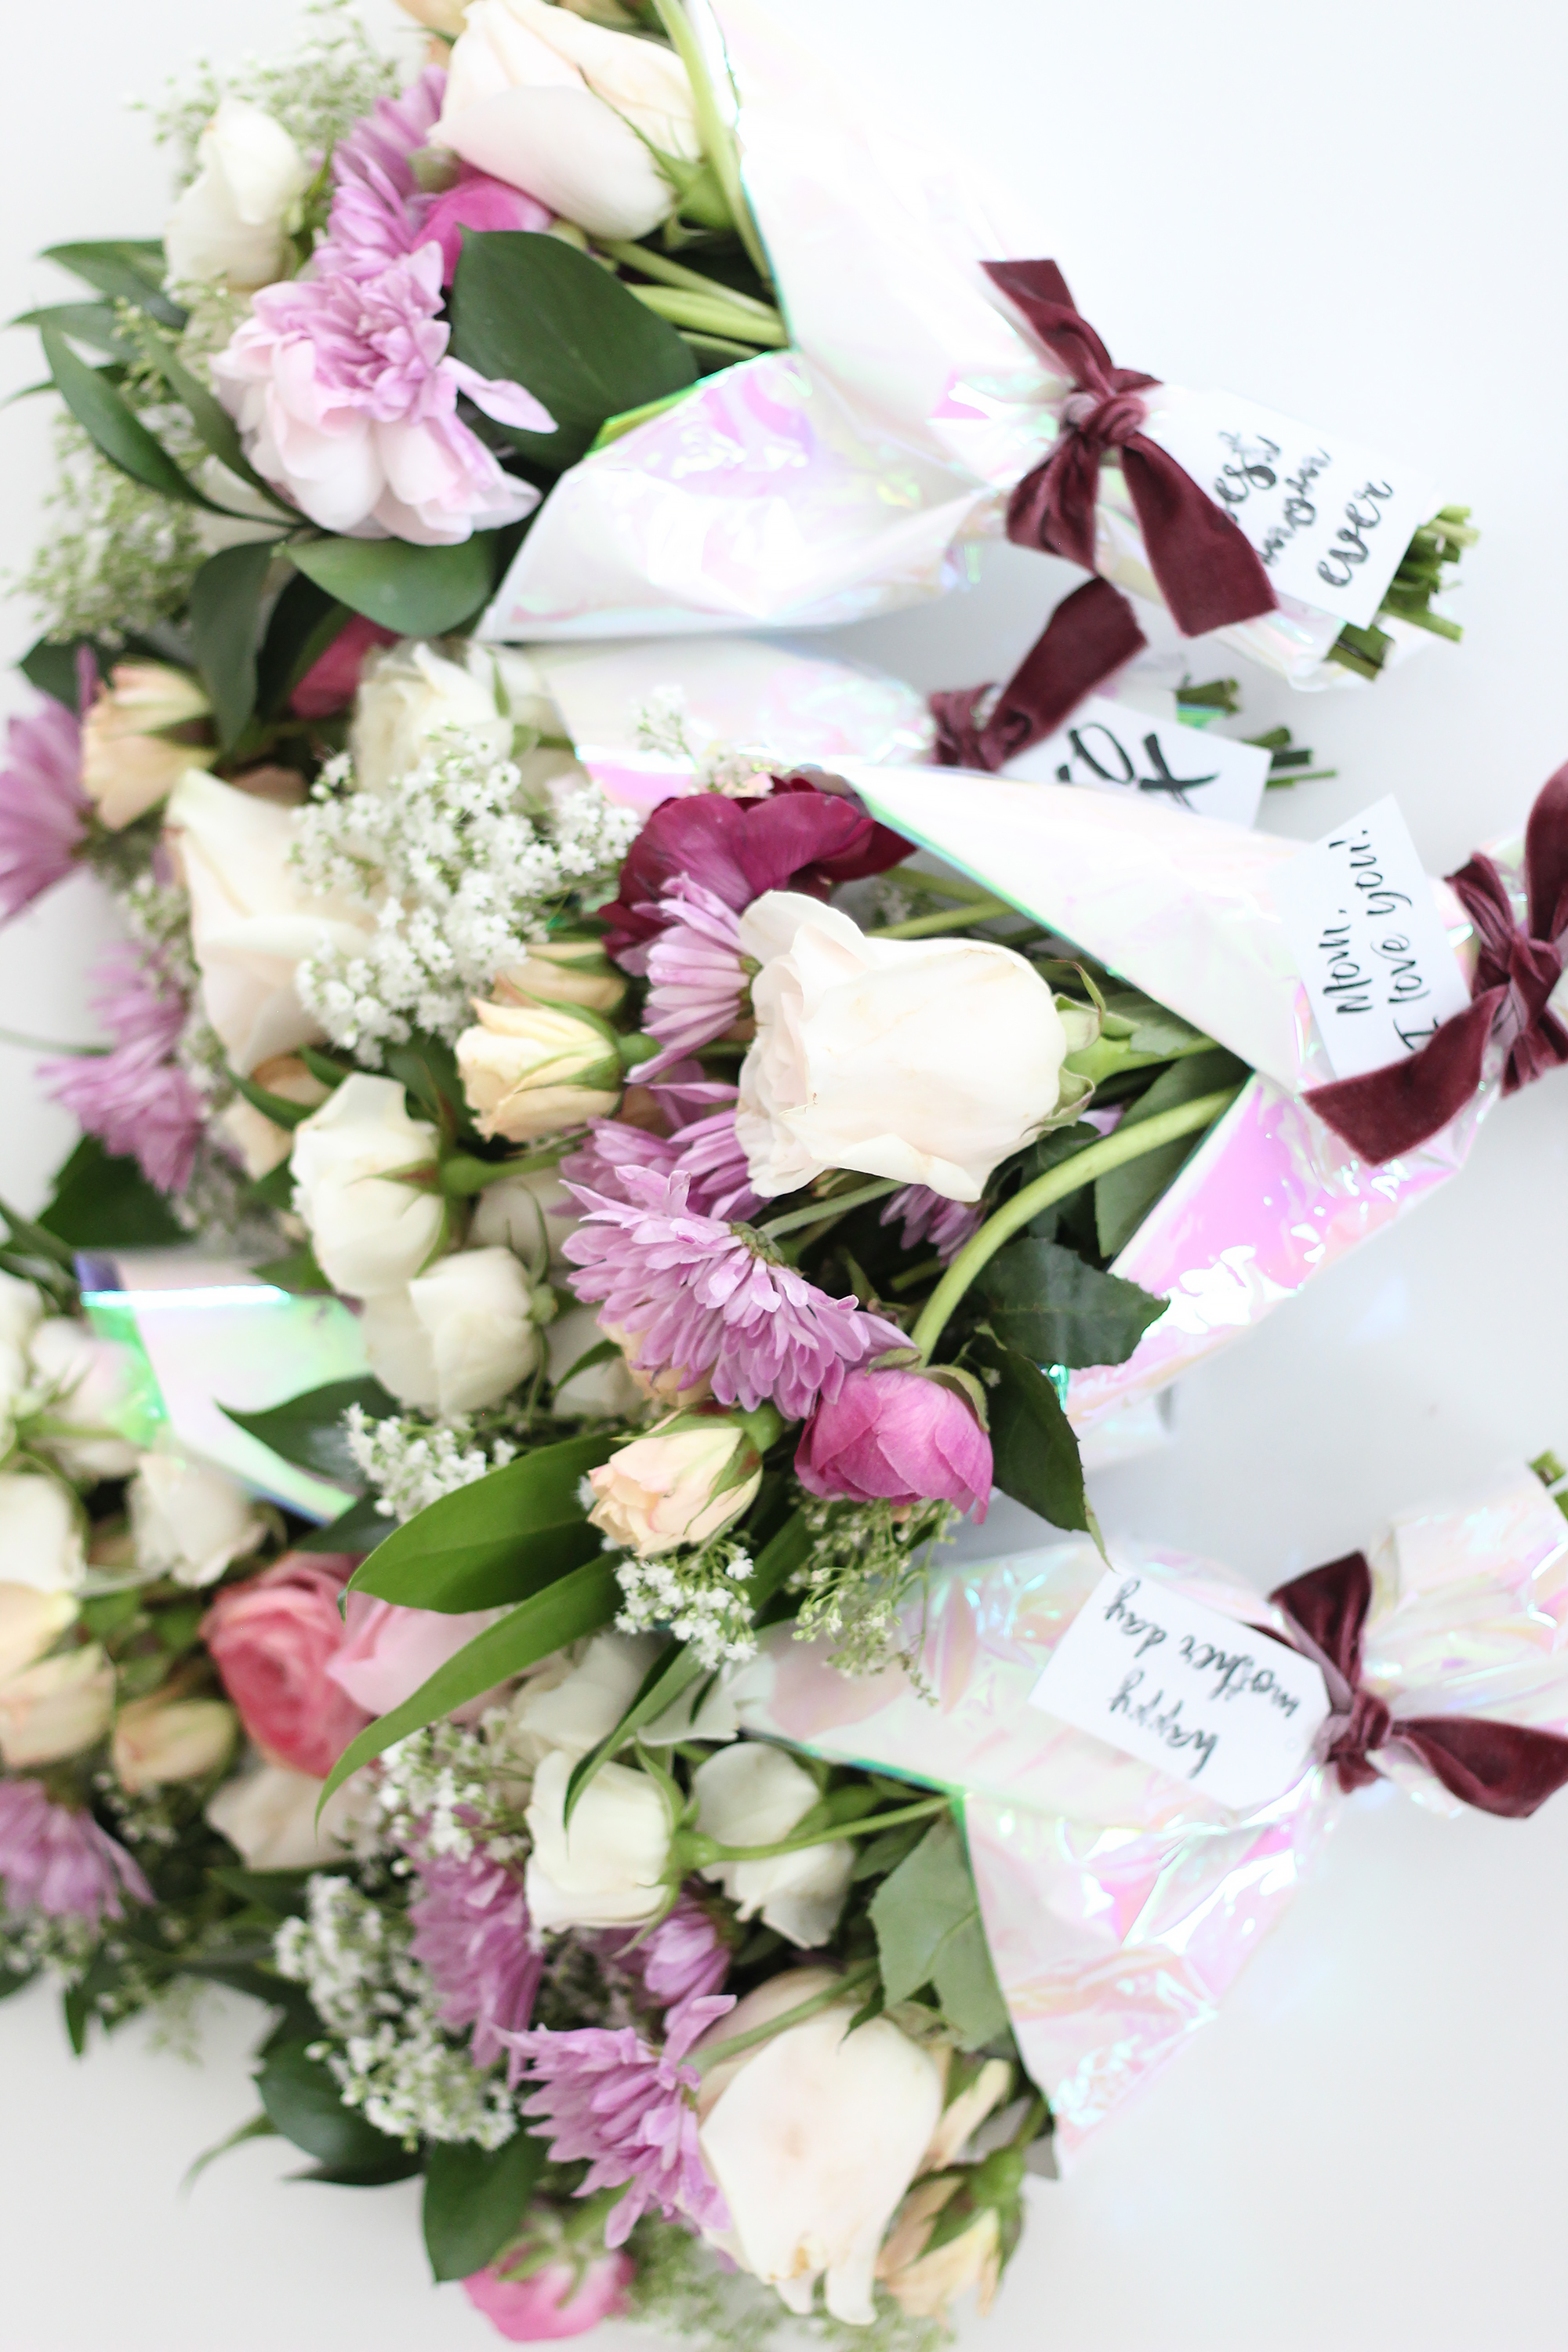 Make these beautiful Mother's Day mini flower bouquets along with our FREE Mother's Day gift tag printables as an easy way to send a message of love. || Darling Darleen